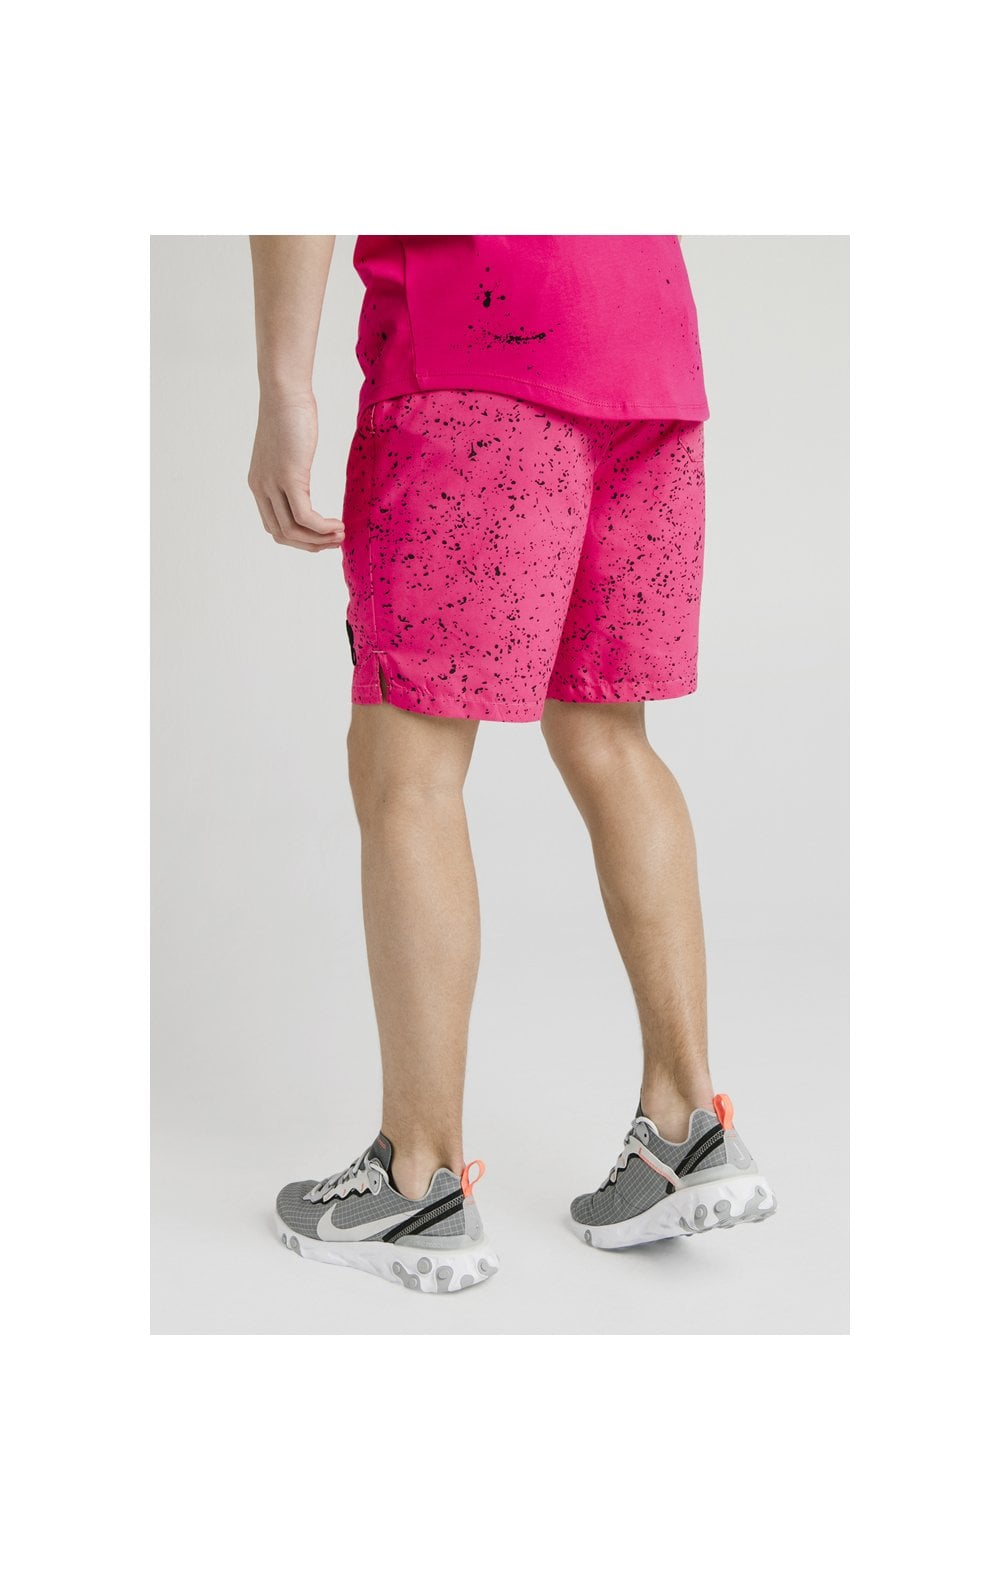 Illusive London Swim Shorts - Black & Pink (1)